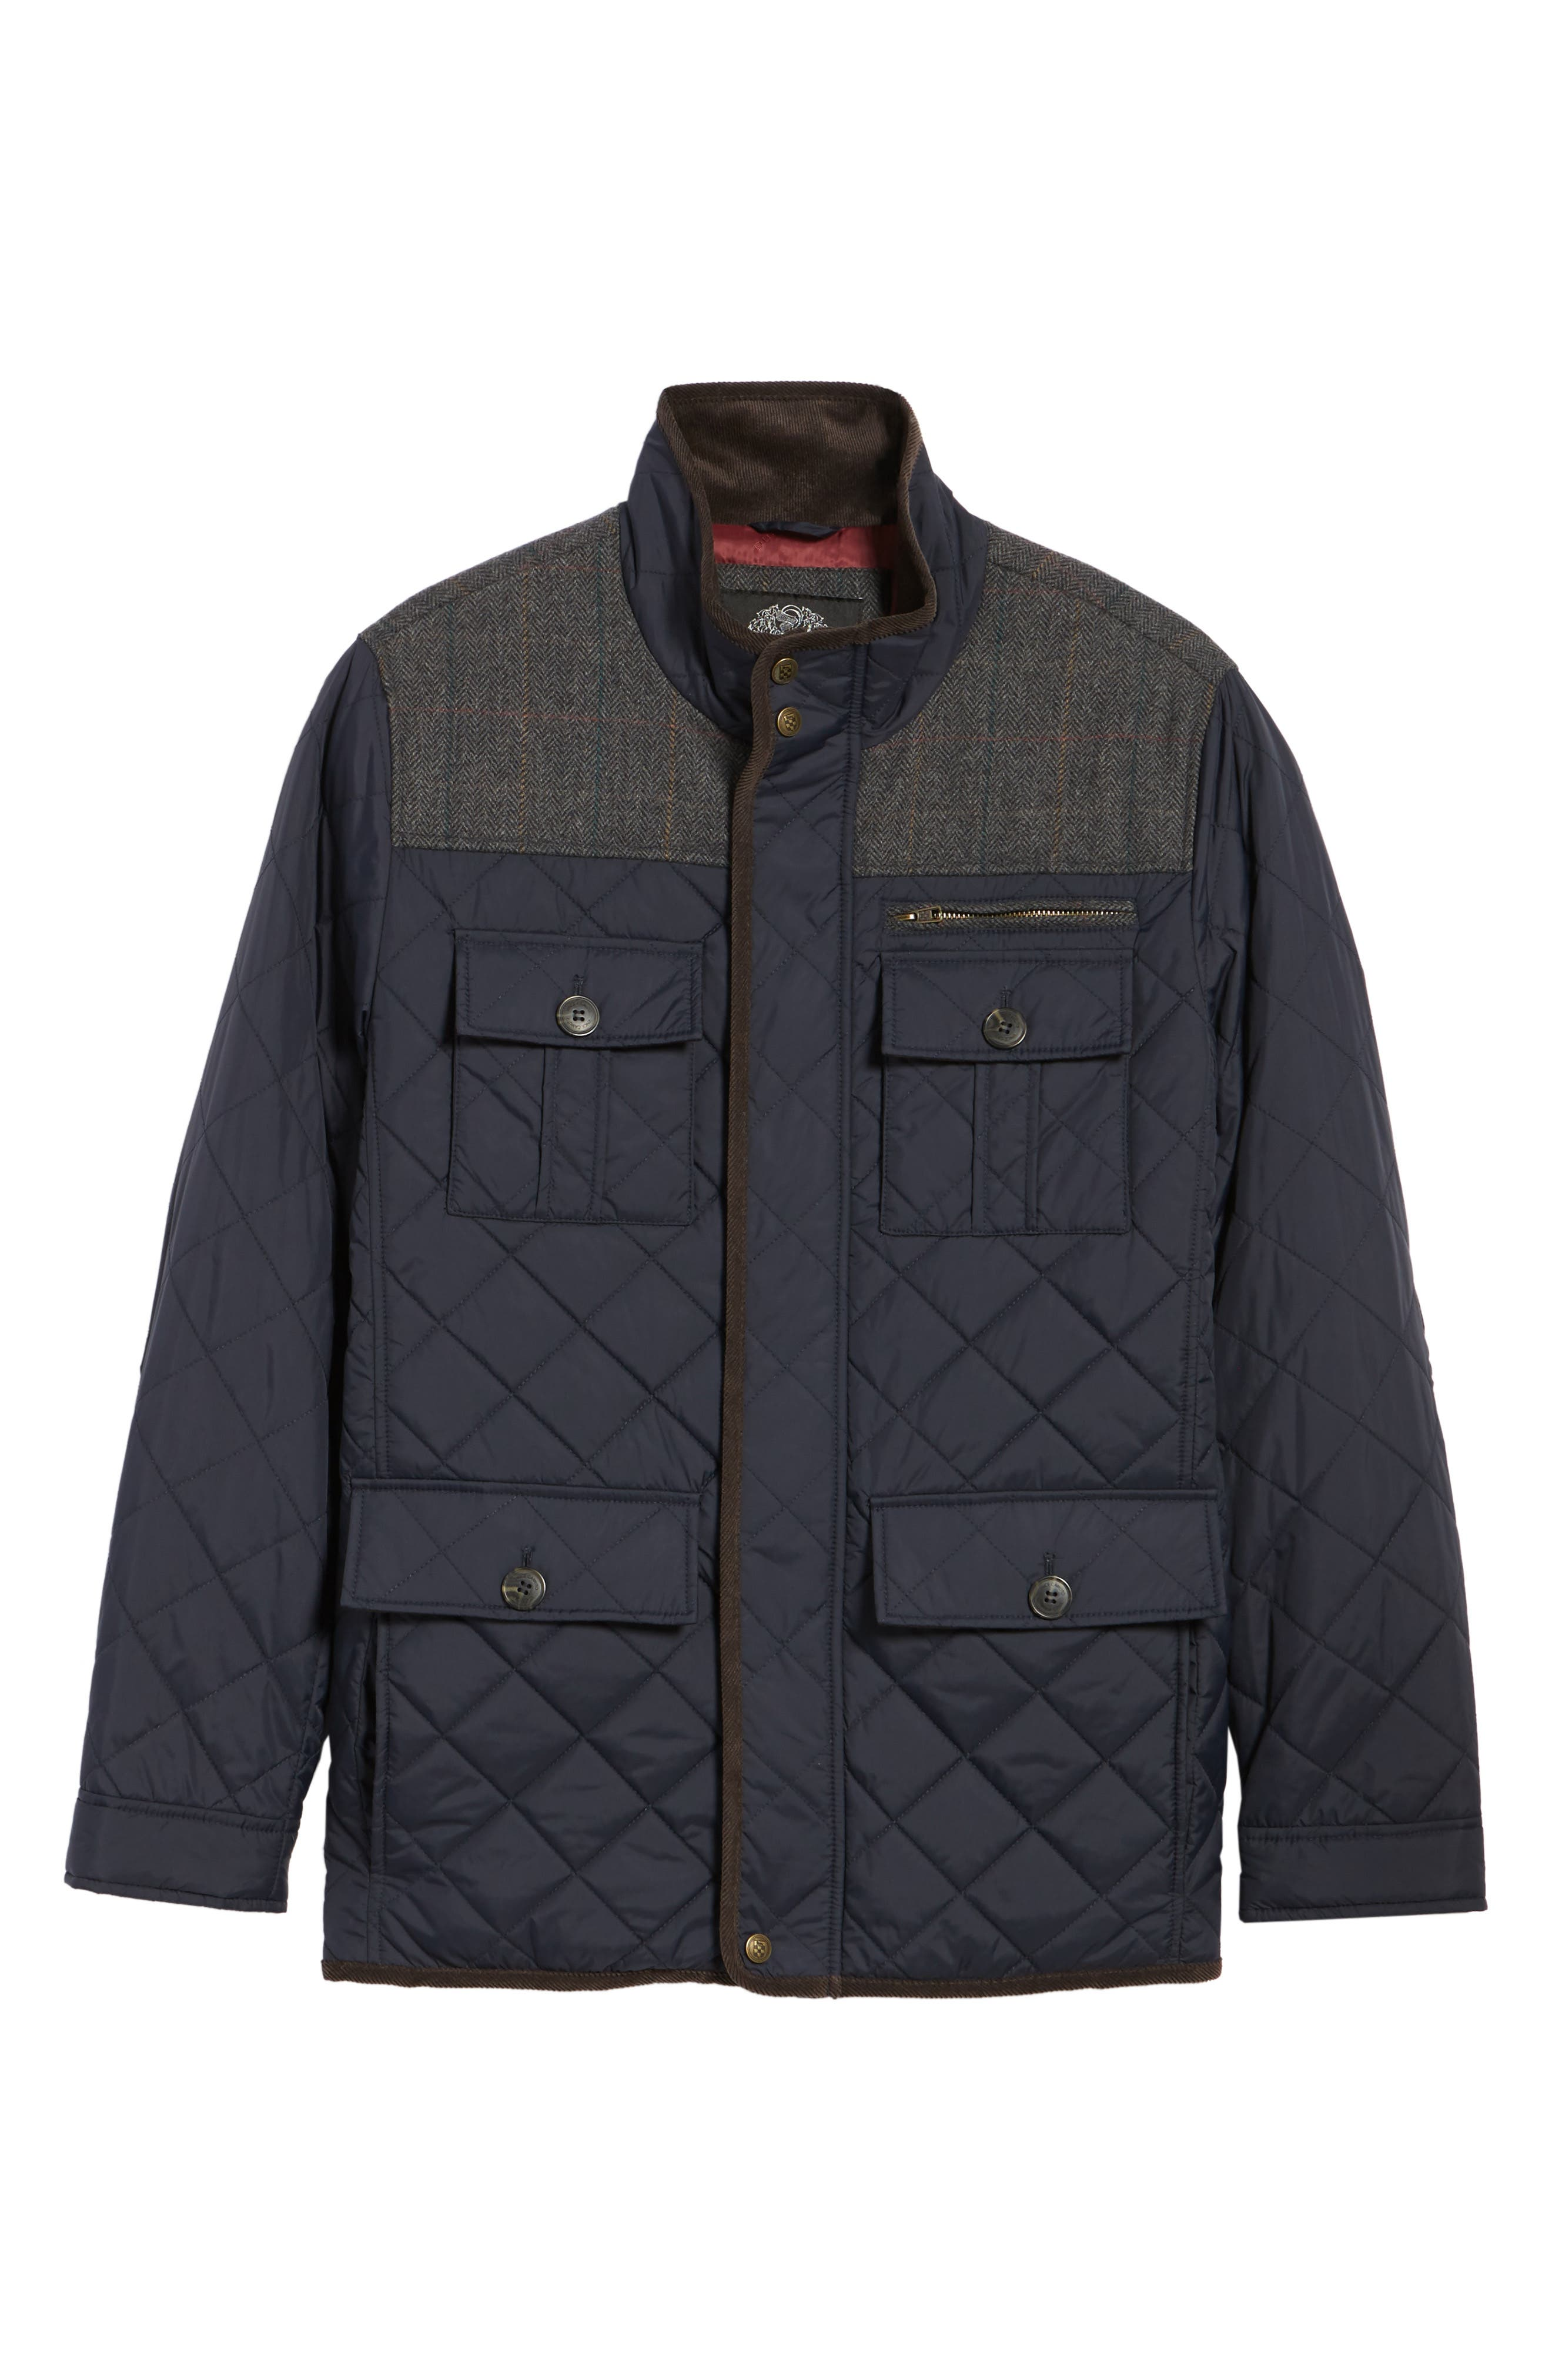 VINCE CAMUTO, Diamond Quilted Full Zip Jacket, Alternate thumbnail 7, color, NAVY